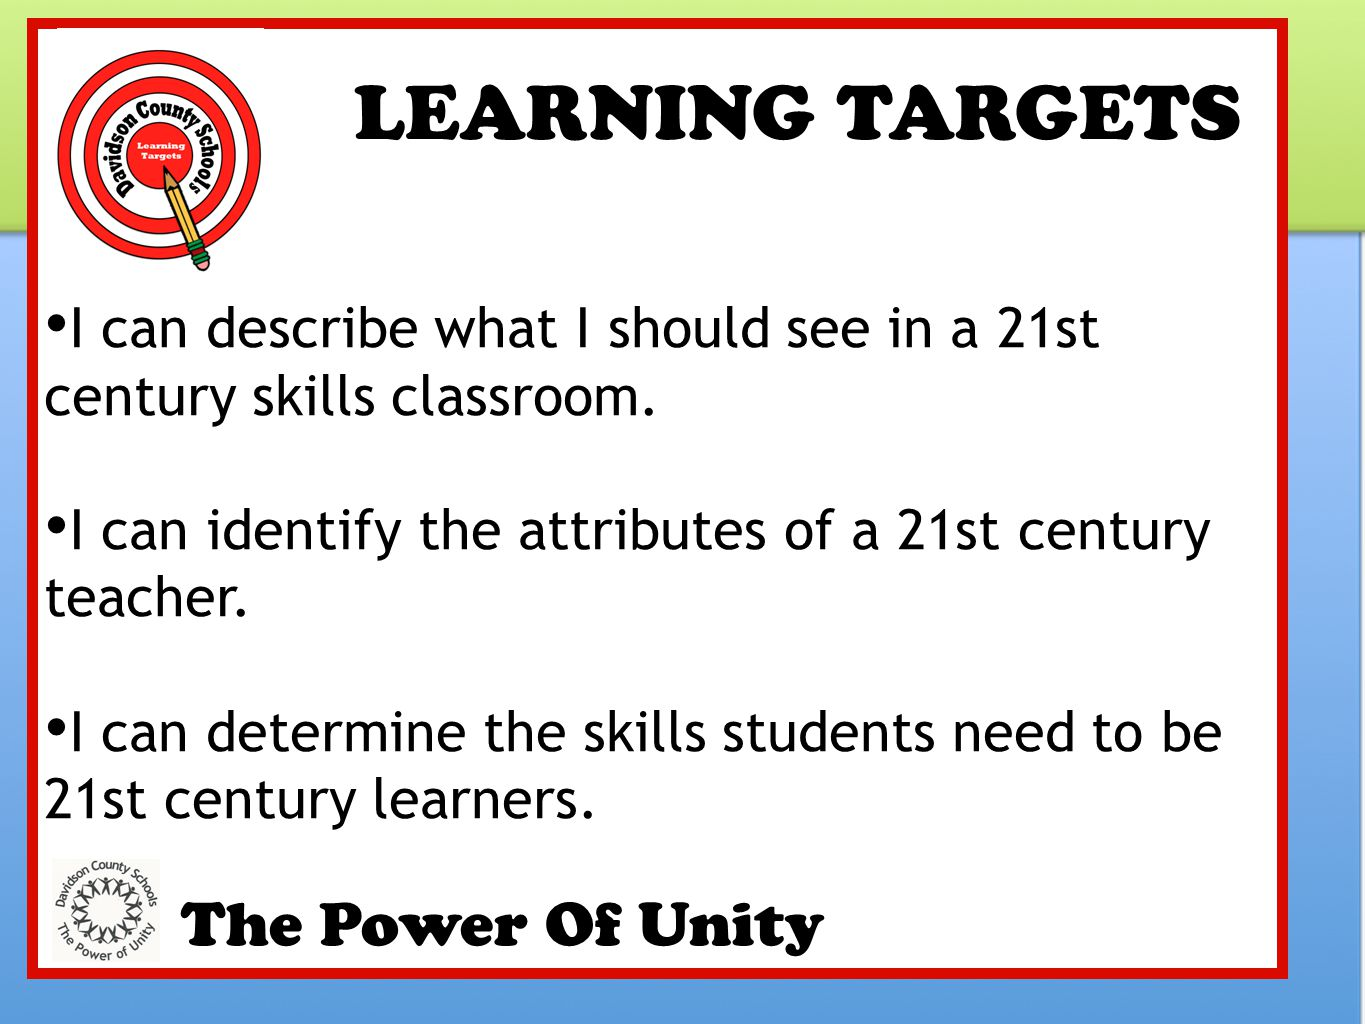 LEARNING TARGETS The Power Of Unity